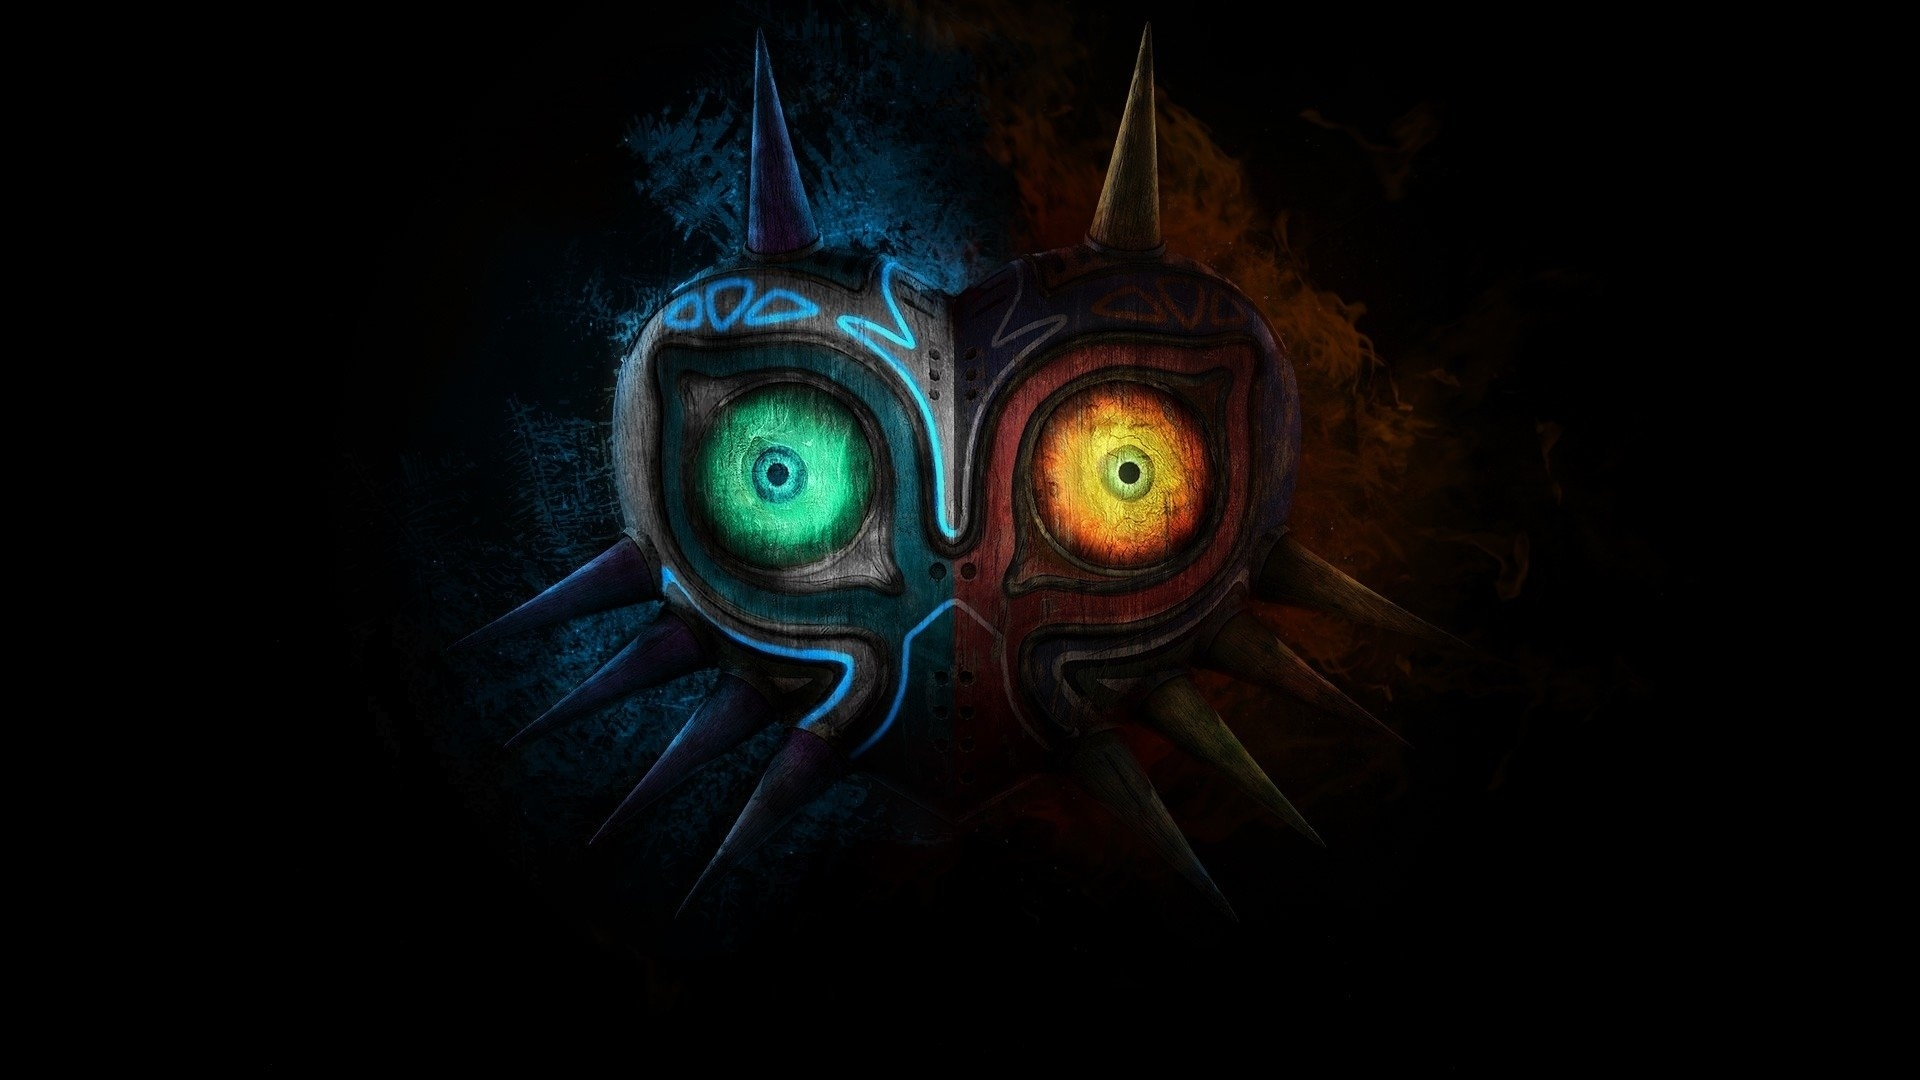 75 the legend of zelda: majora's mask hd wallpapers | background